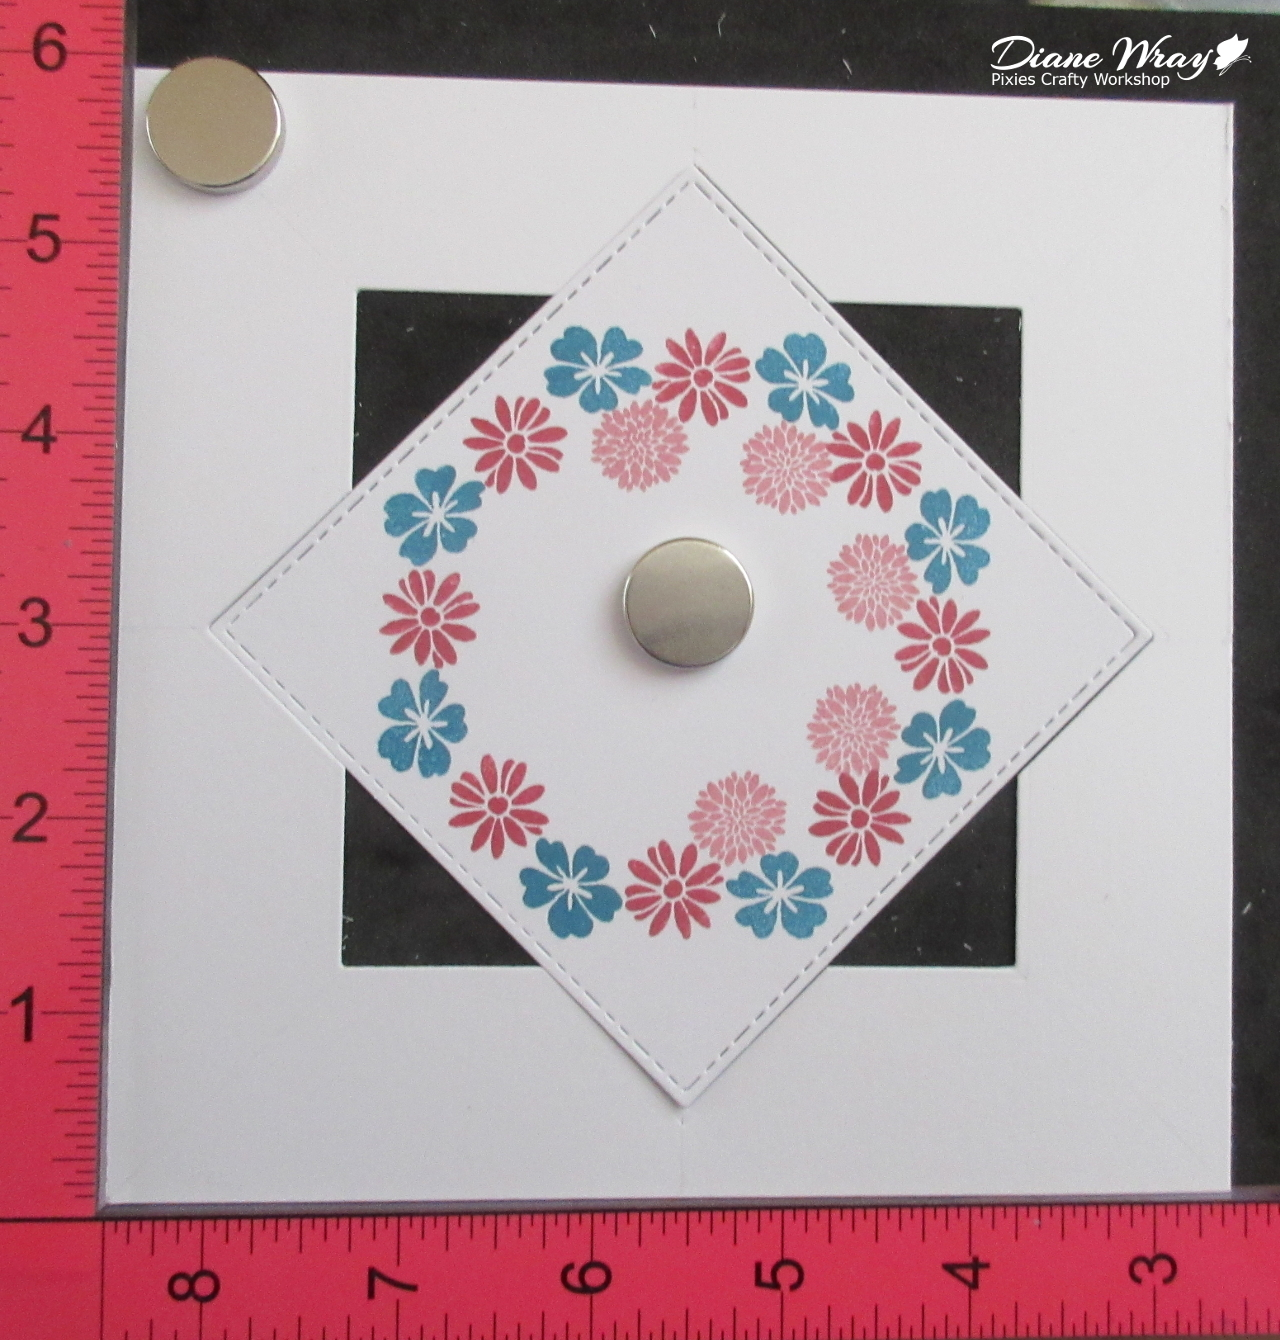 Pixie\'s Crafty Workshop: Has anyone seen this idea yet -